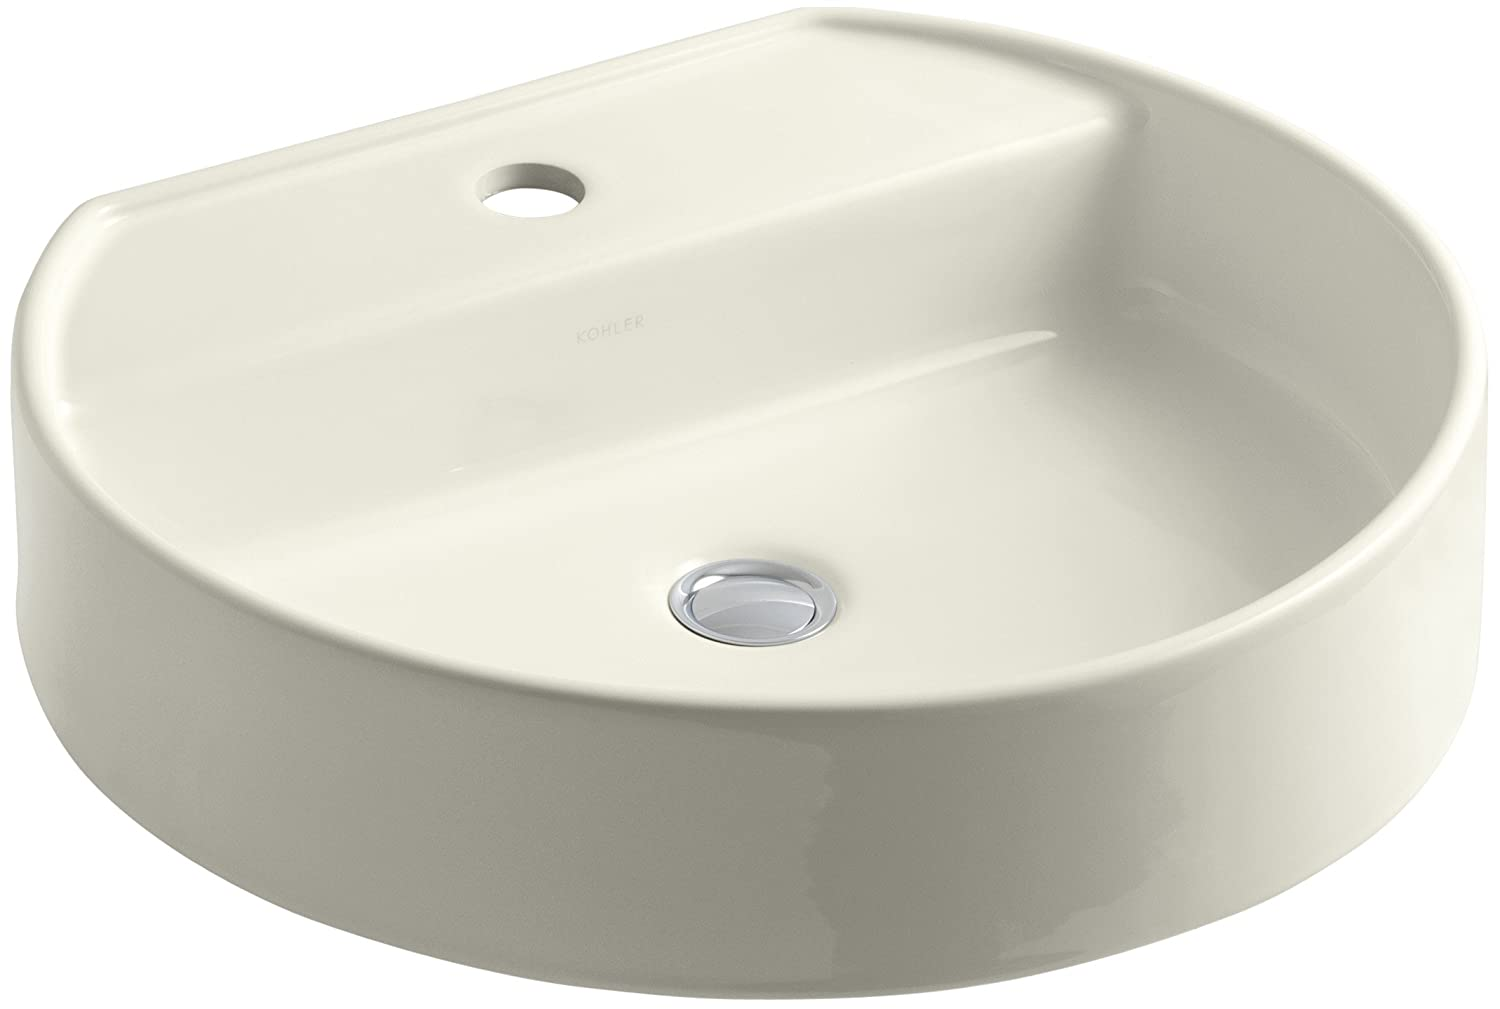 KOHLER K-2331-1-96 Chord Wading Pool Bathroom Sink with Single-Hole Faucet Drilling, Biscuit